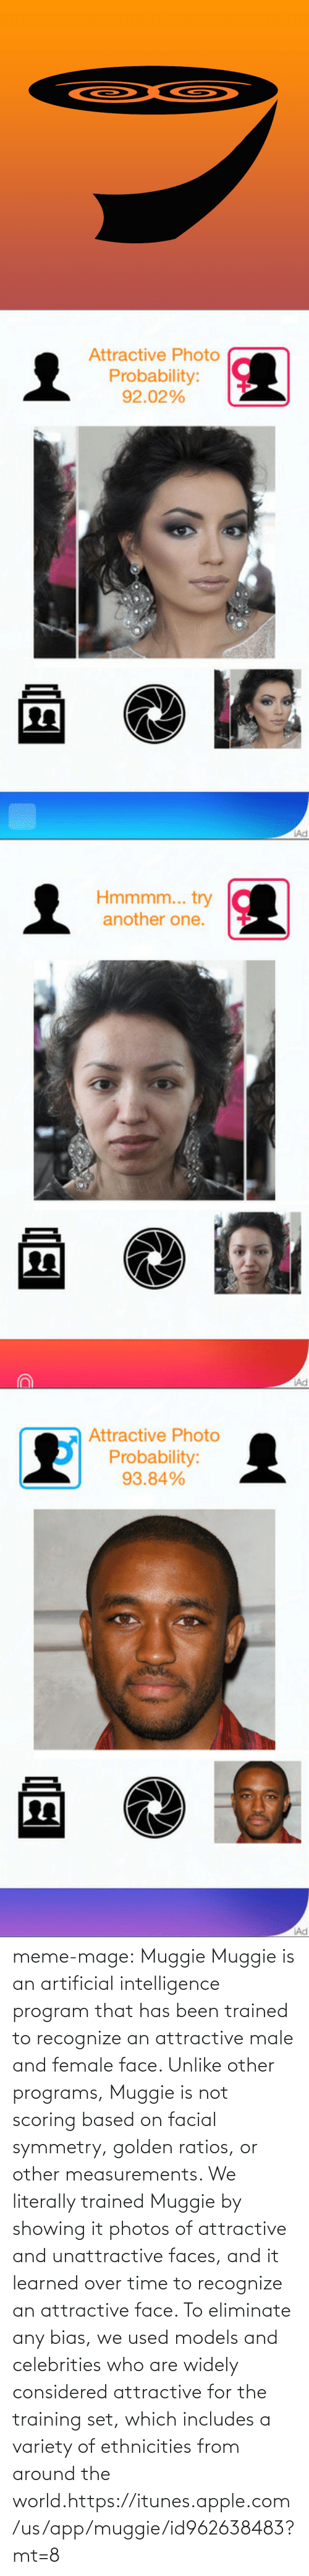 Ratios: Attractive Photo  Probability:  92.02%  Ad   Hmmmm... try  another one  Ad   Attractive Photo  Probability:  93.84%  Ad meme-mage:    Muggie    Muggie is an artificial intelligence program that has been trained to recognize an attractive male and female face. Unlike other programs, Muggie is not scoring based on facial symmetry, golden ratios, or other measurements. We literally trained Muggie by showing it photos of attractive and unattractive faces, and it learned over time to recognize an attractive face. To eliminate any bias, we used models and celebrities who are widely considered attractive for the training set, which includes a variety of ethnicities from around the world.https://itunes.apple.com/us/app/muggie/id962638483?mt=8